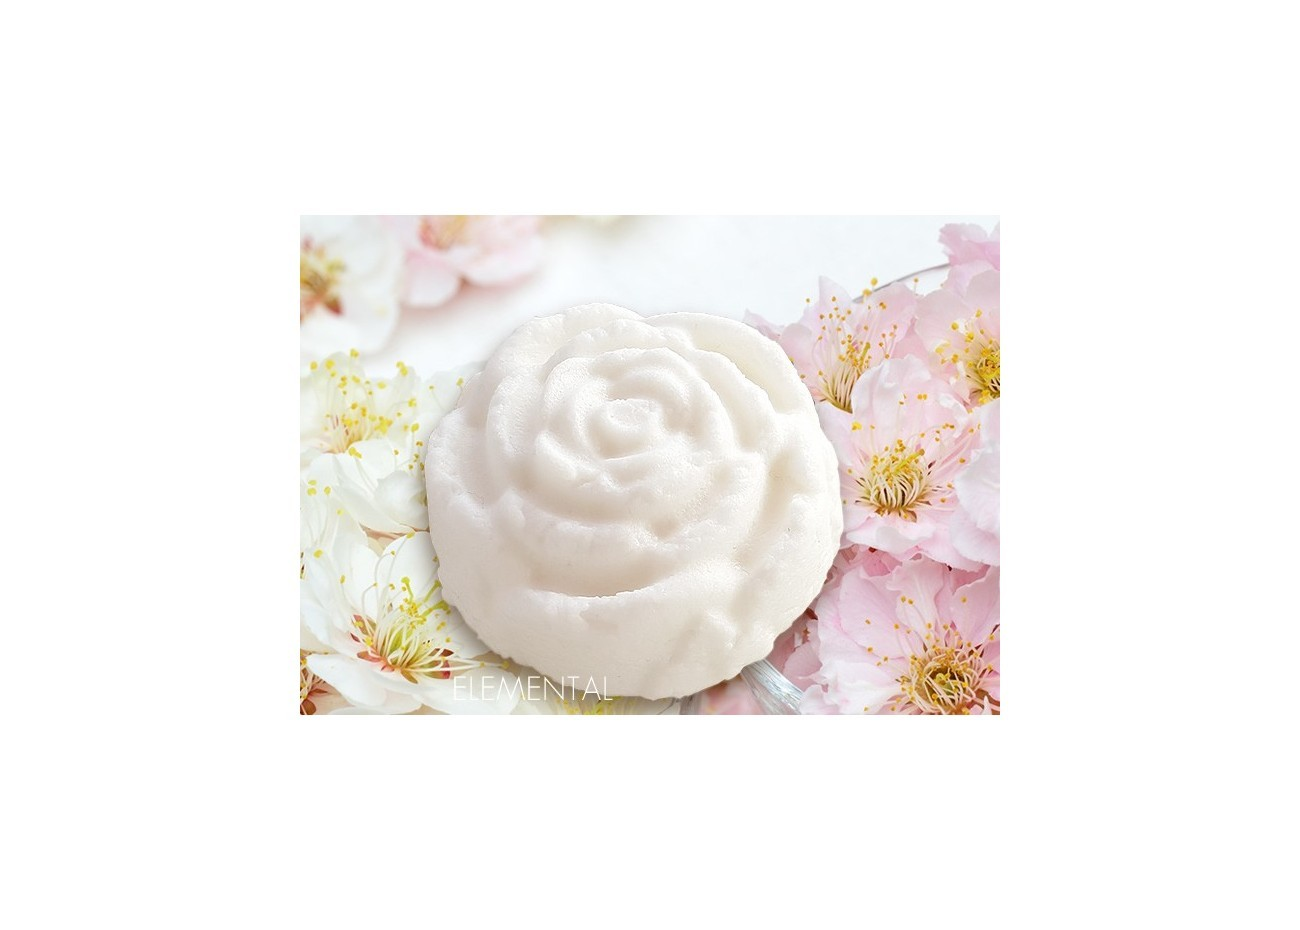 Cleansing bar, face & body